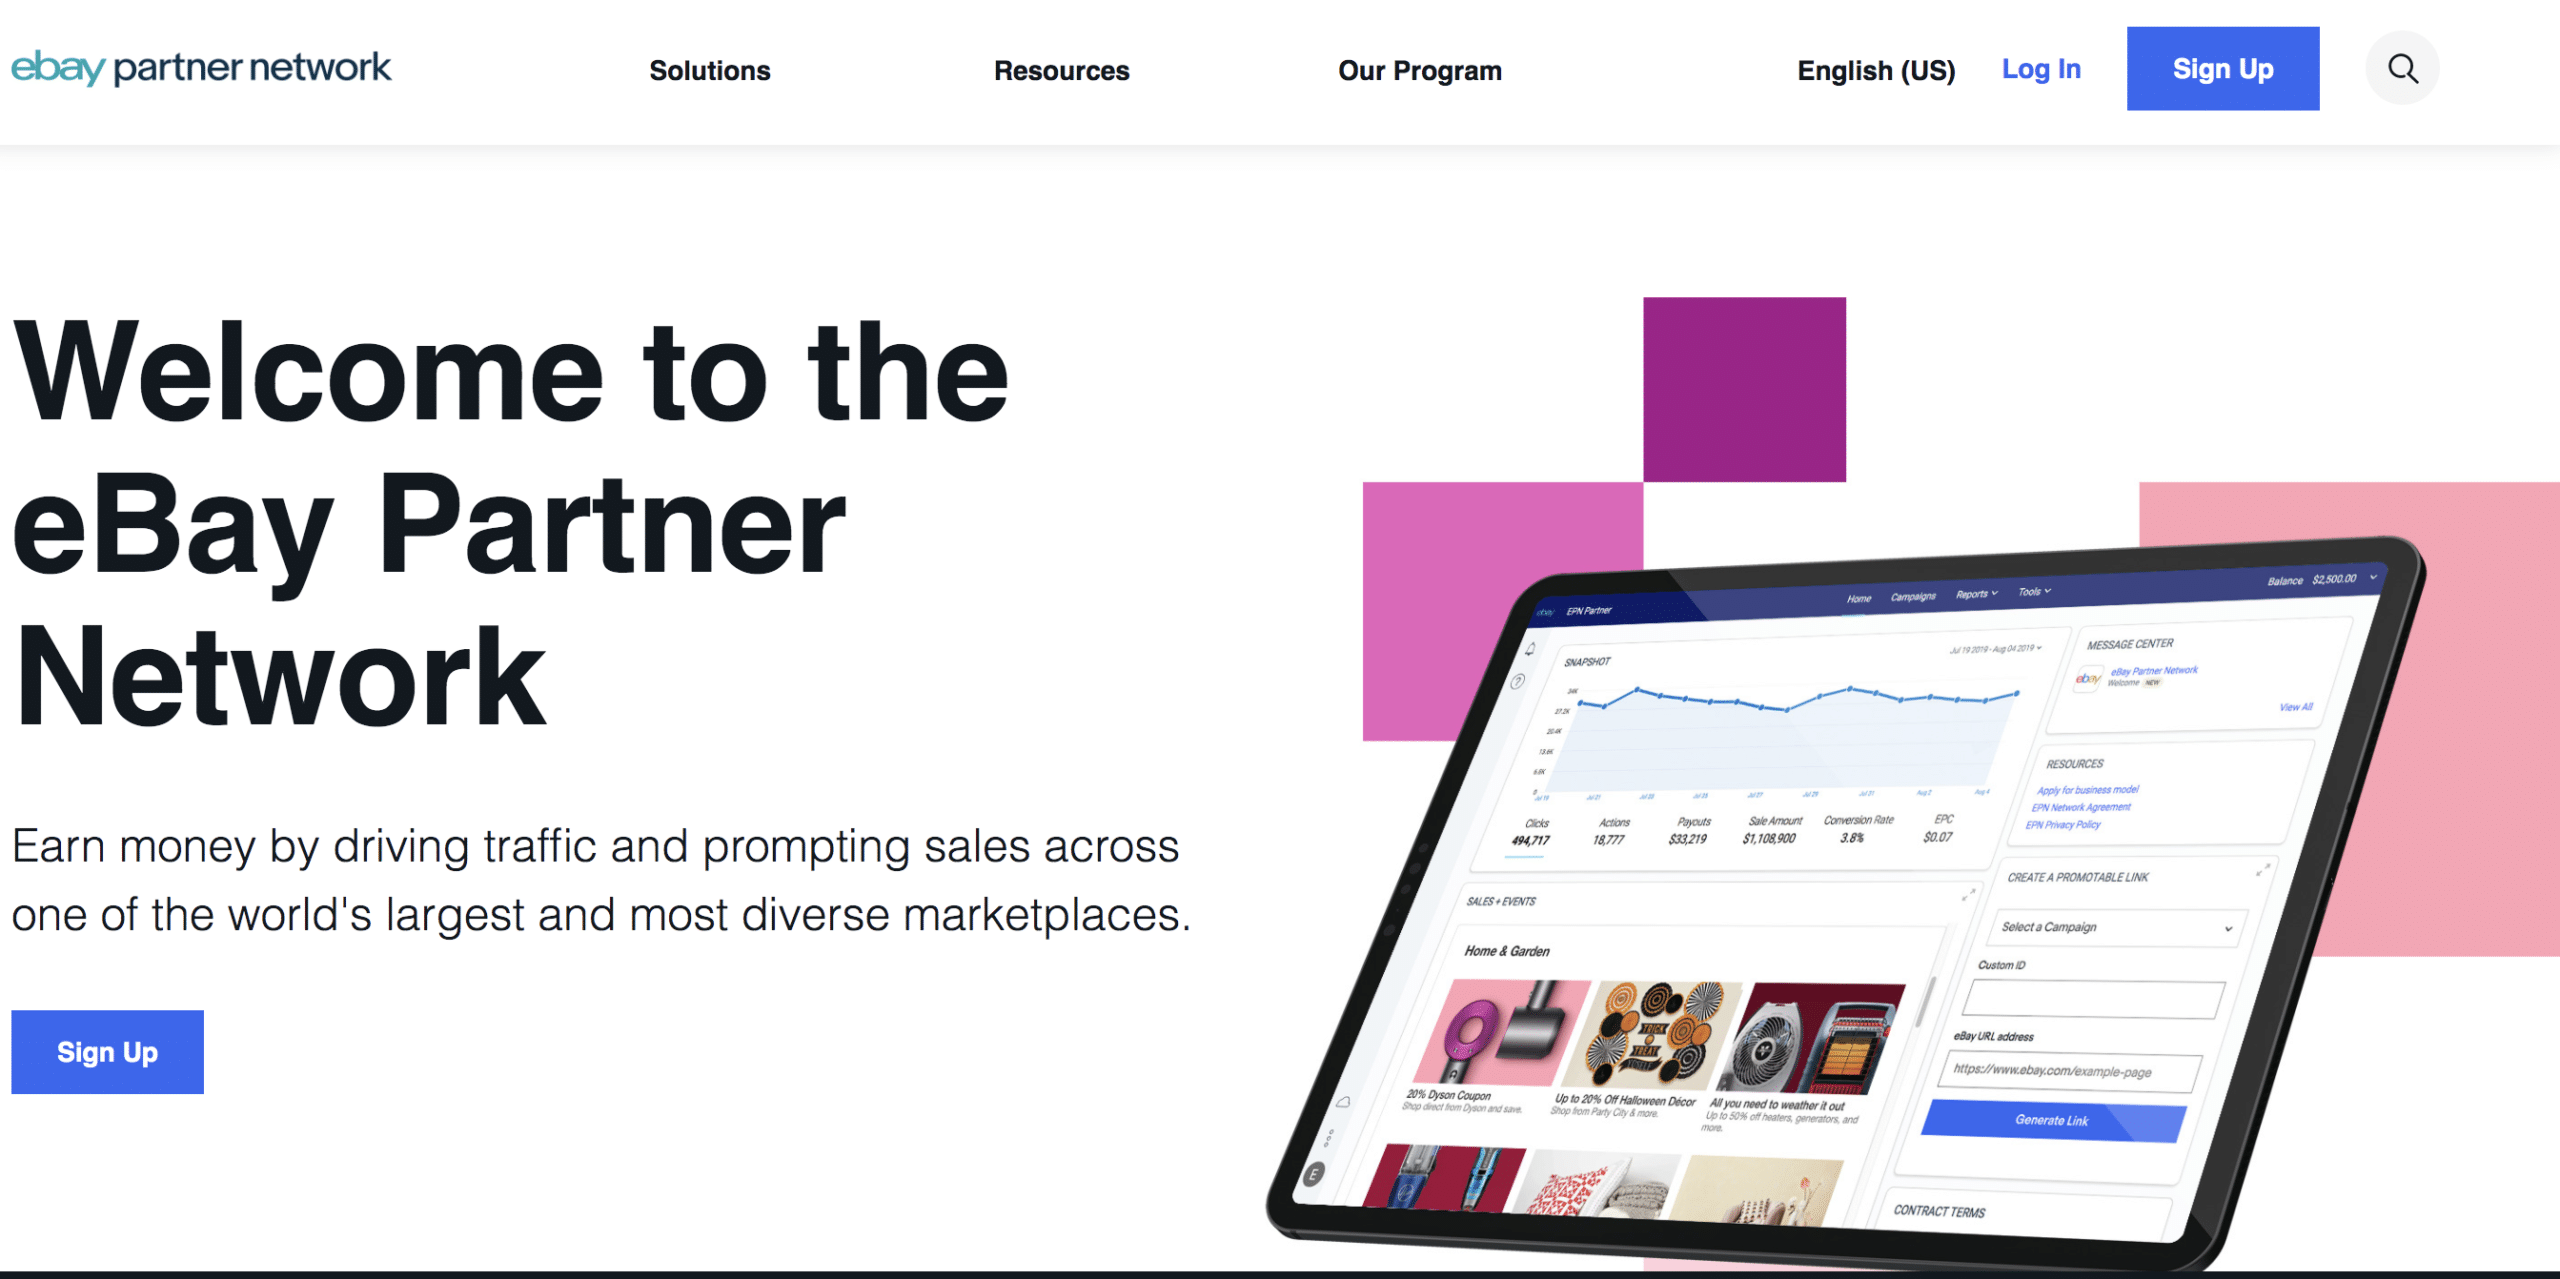 ebay partner program homepage